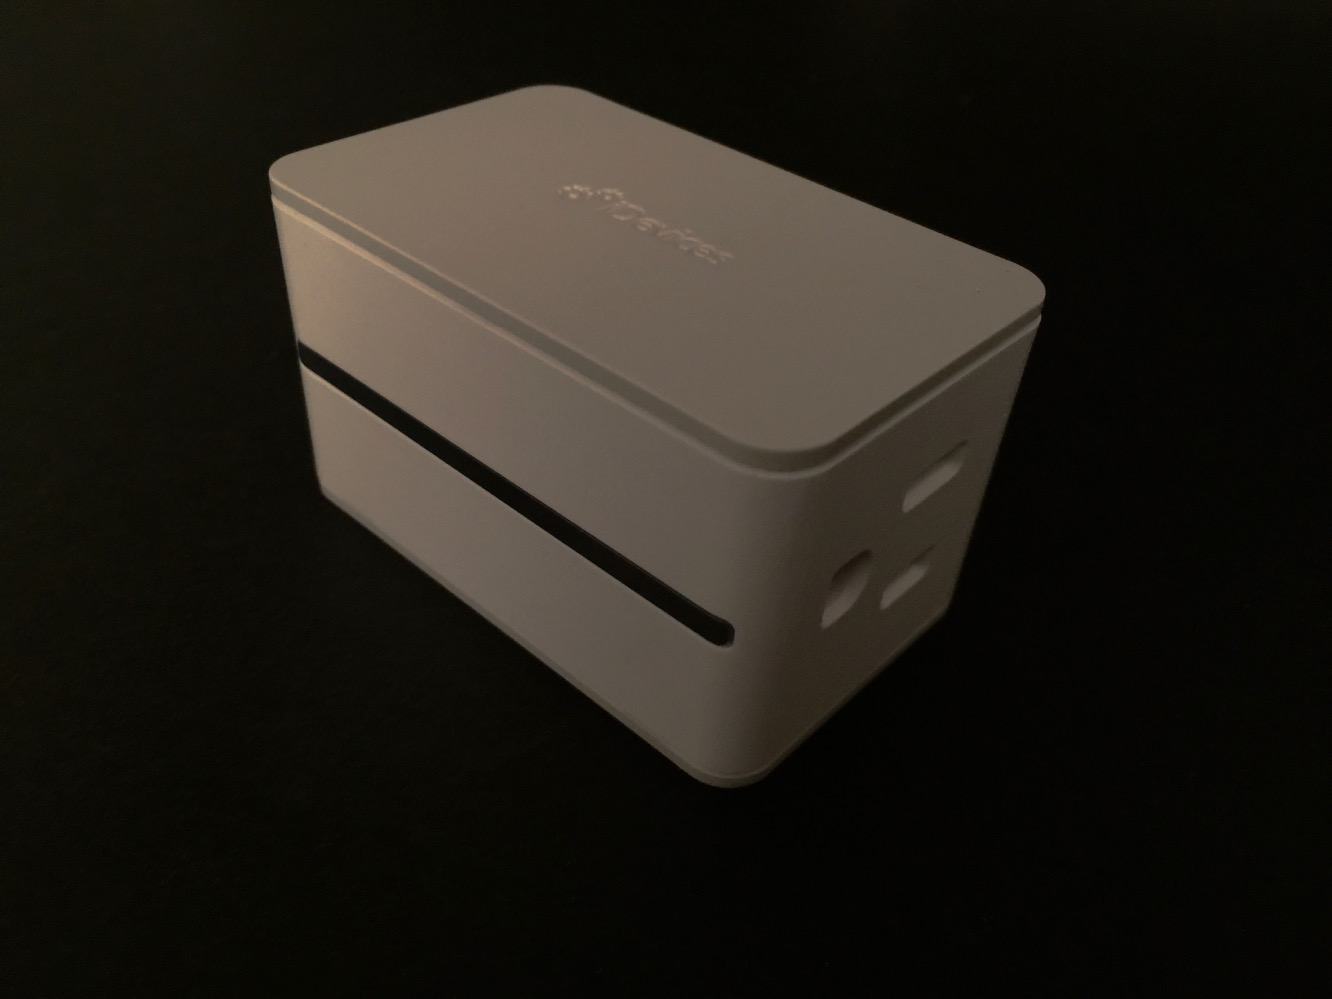 Review: iDevices Switch HomeKit and Wi-Fi enabled plug